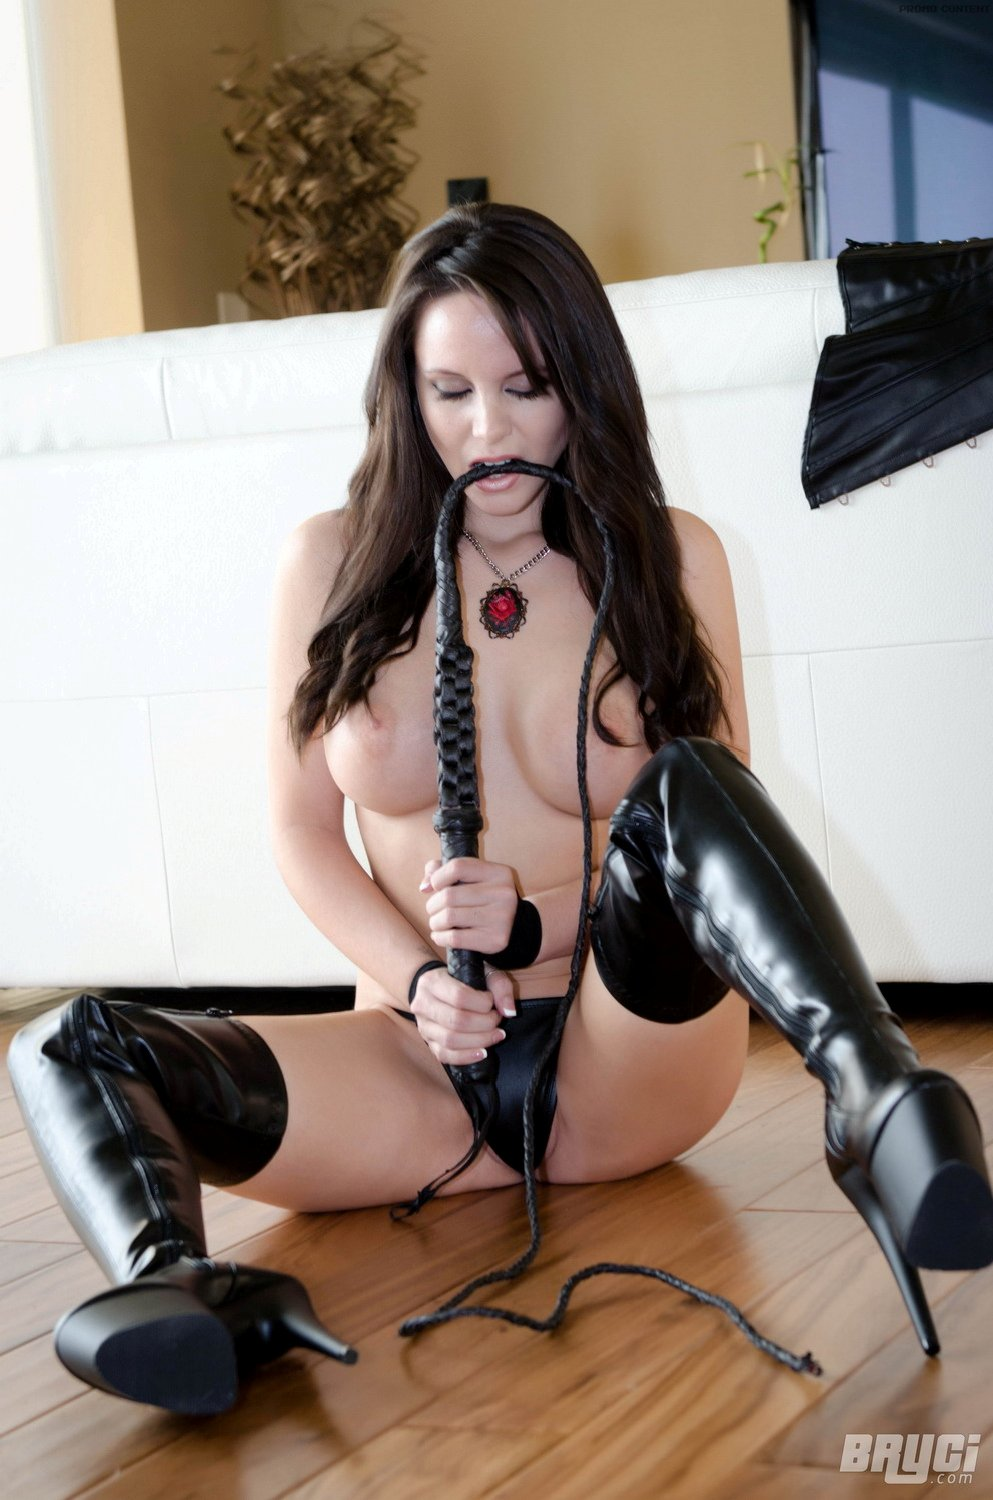 steve meets katie video whipping femdom